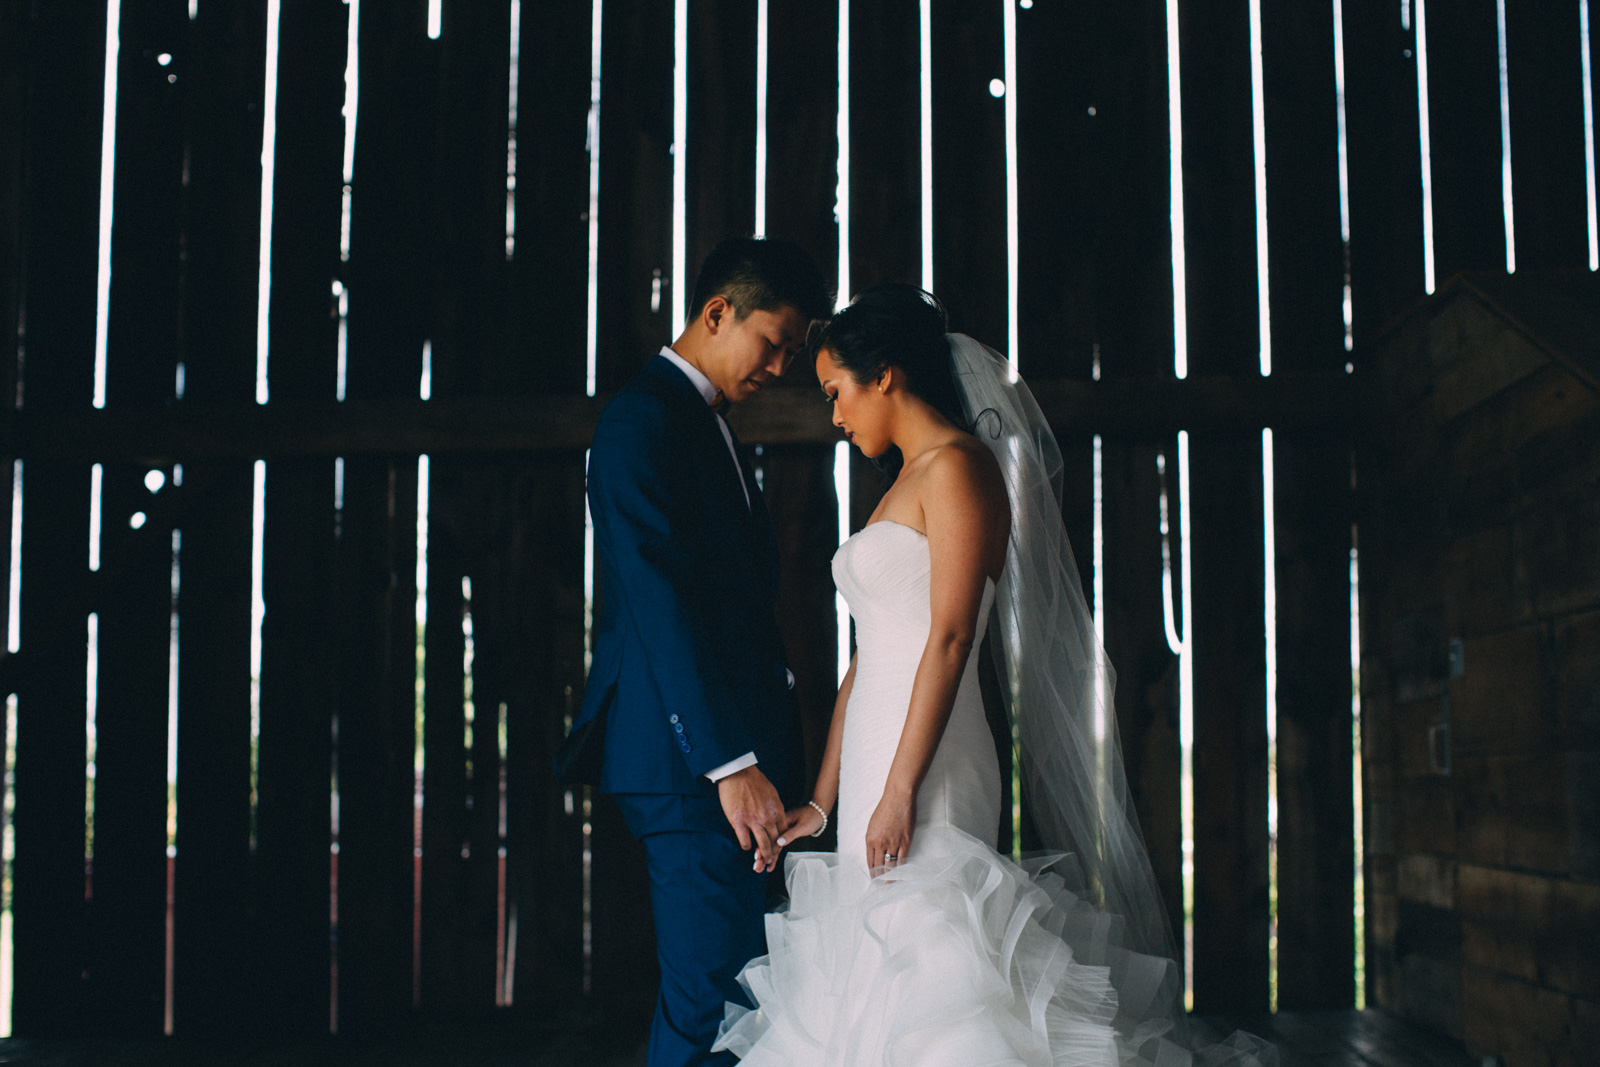 cambium-farms-wedding-photography-by-sam-wong-of-artanis-collective_21